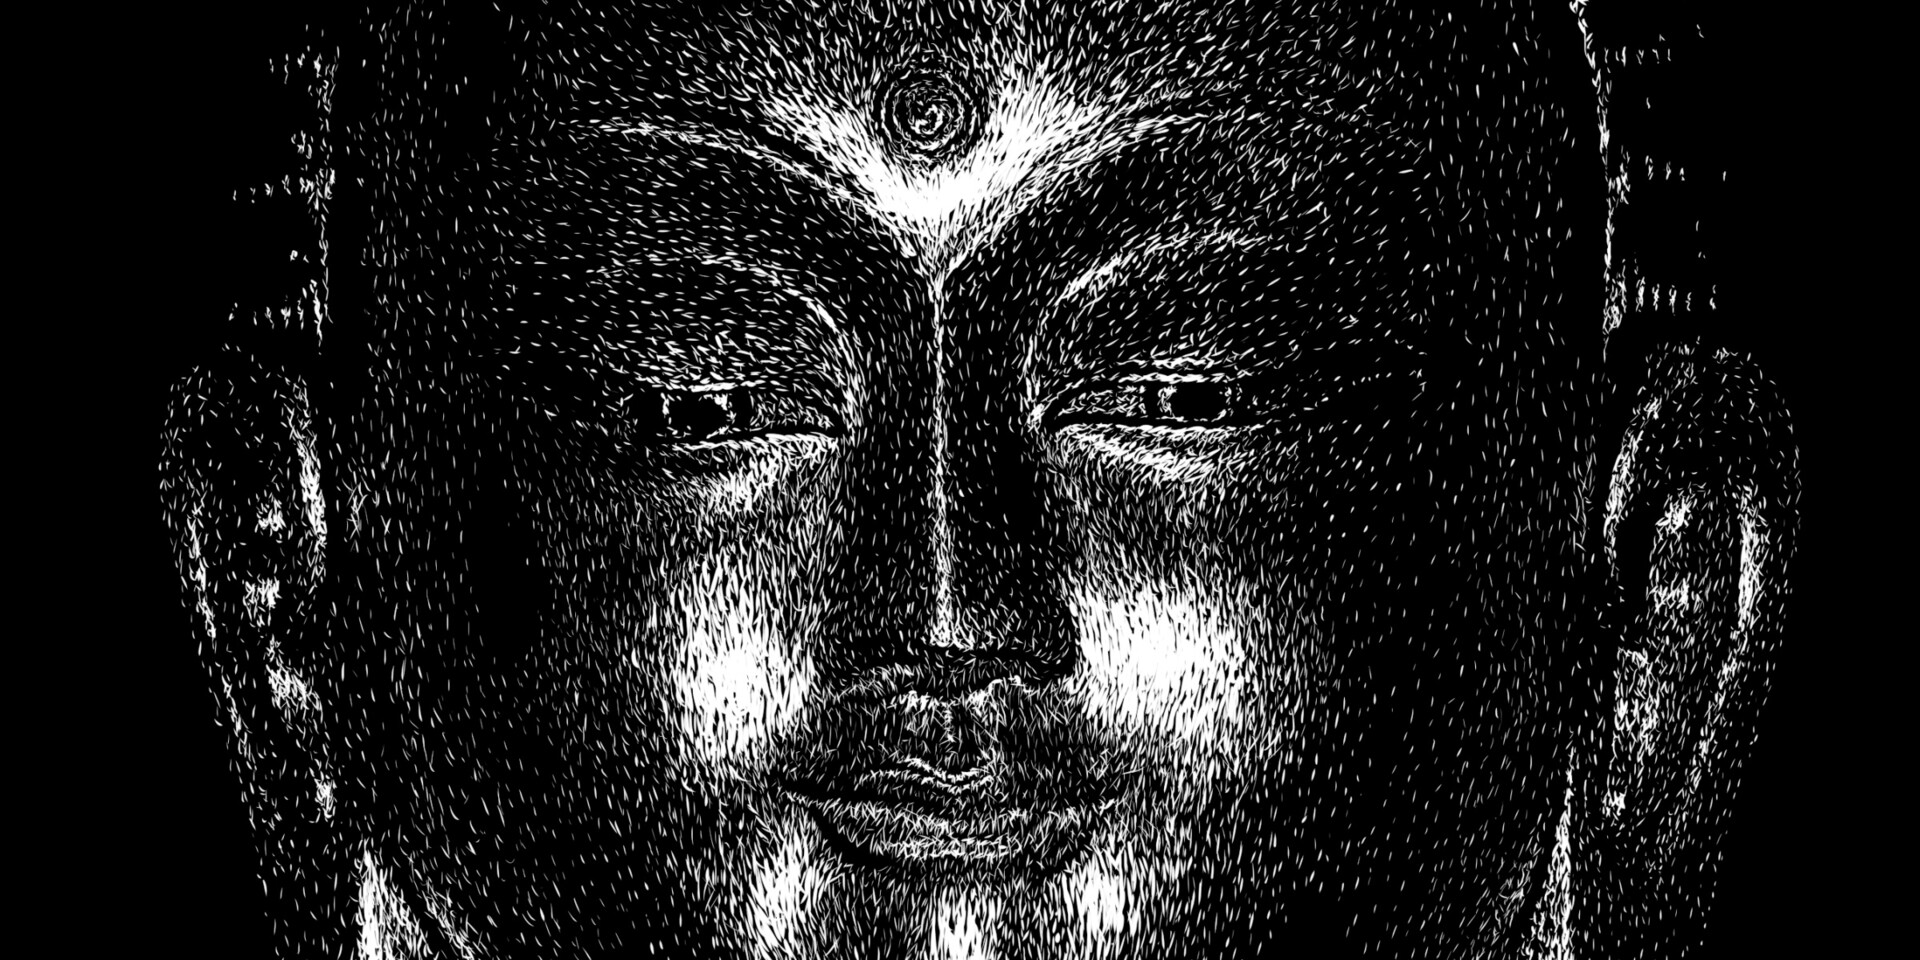 Buddha, face close-up